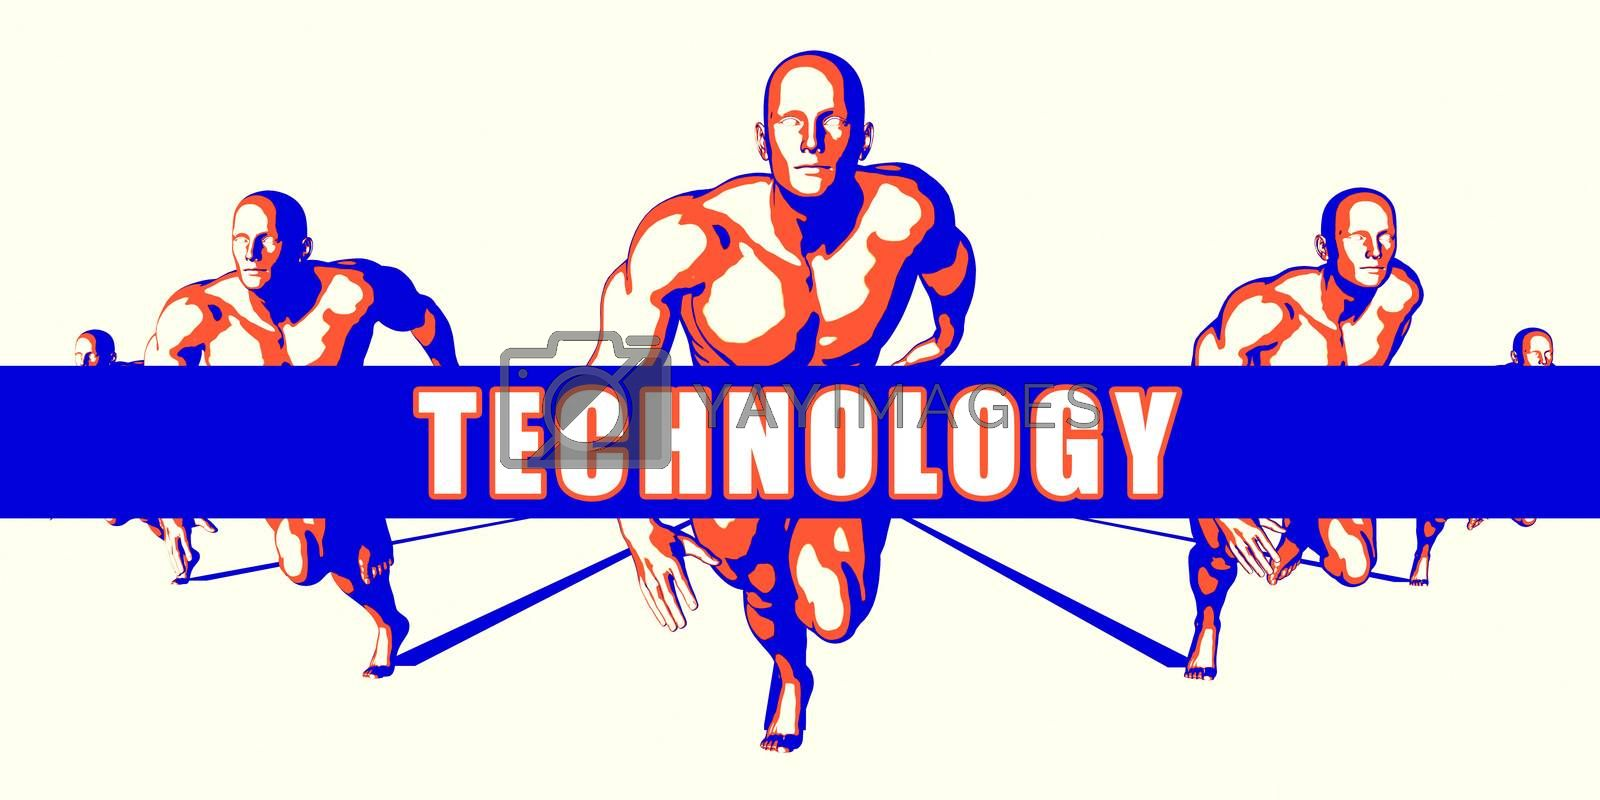 Technology as a Competition Concept Illustration Art